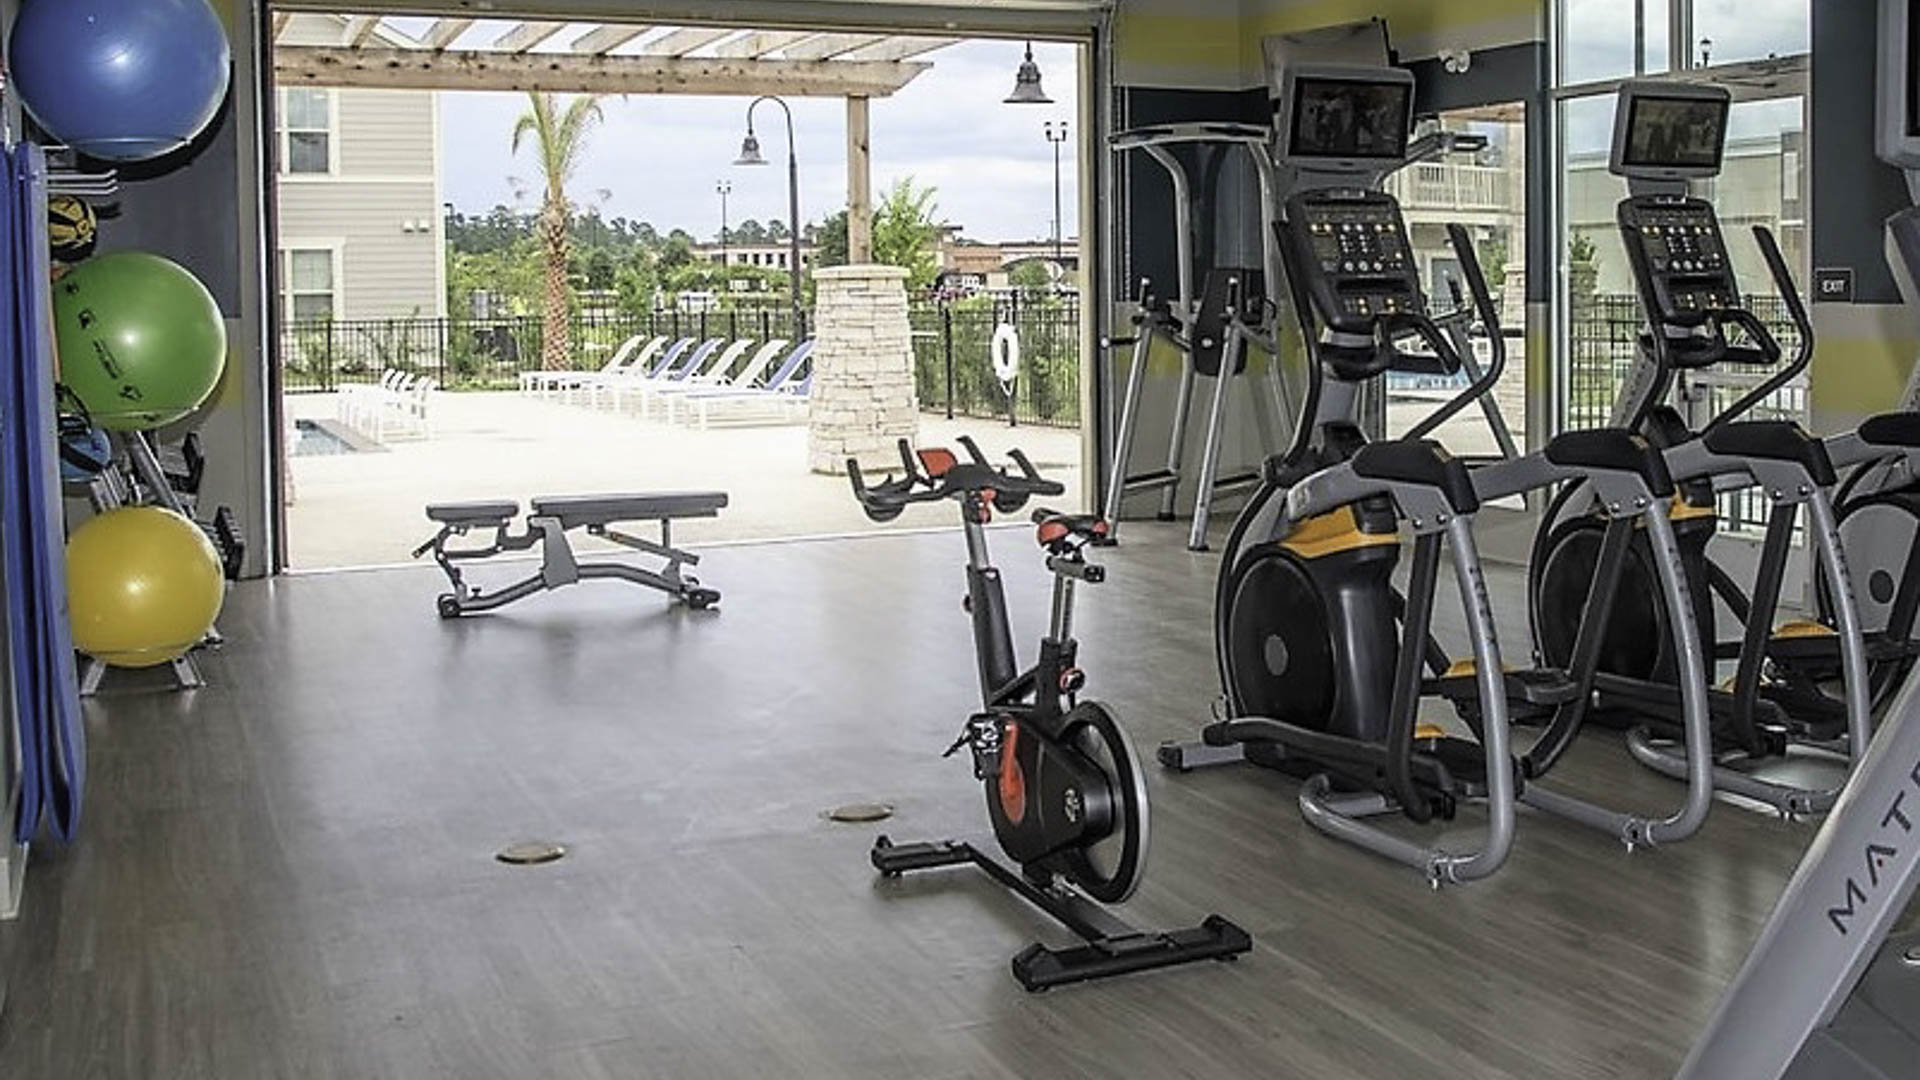 Springs at Juban Crossing fitness center with open garage